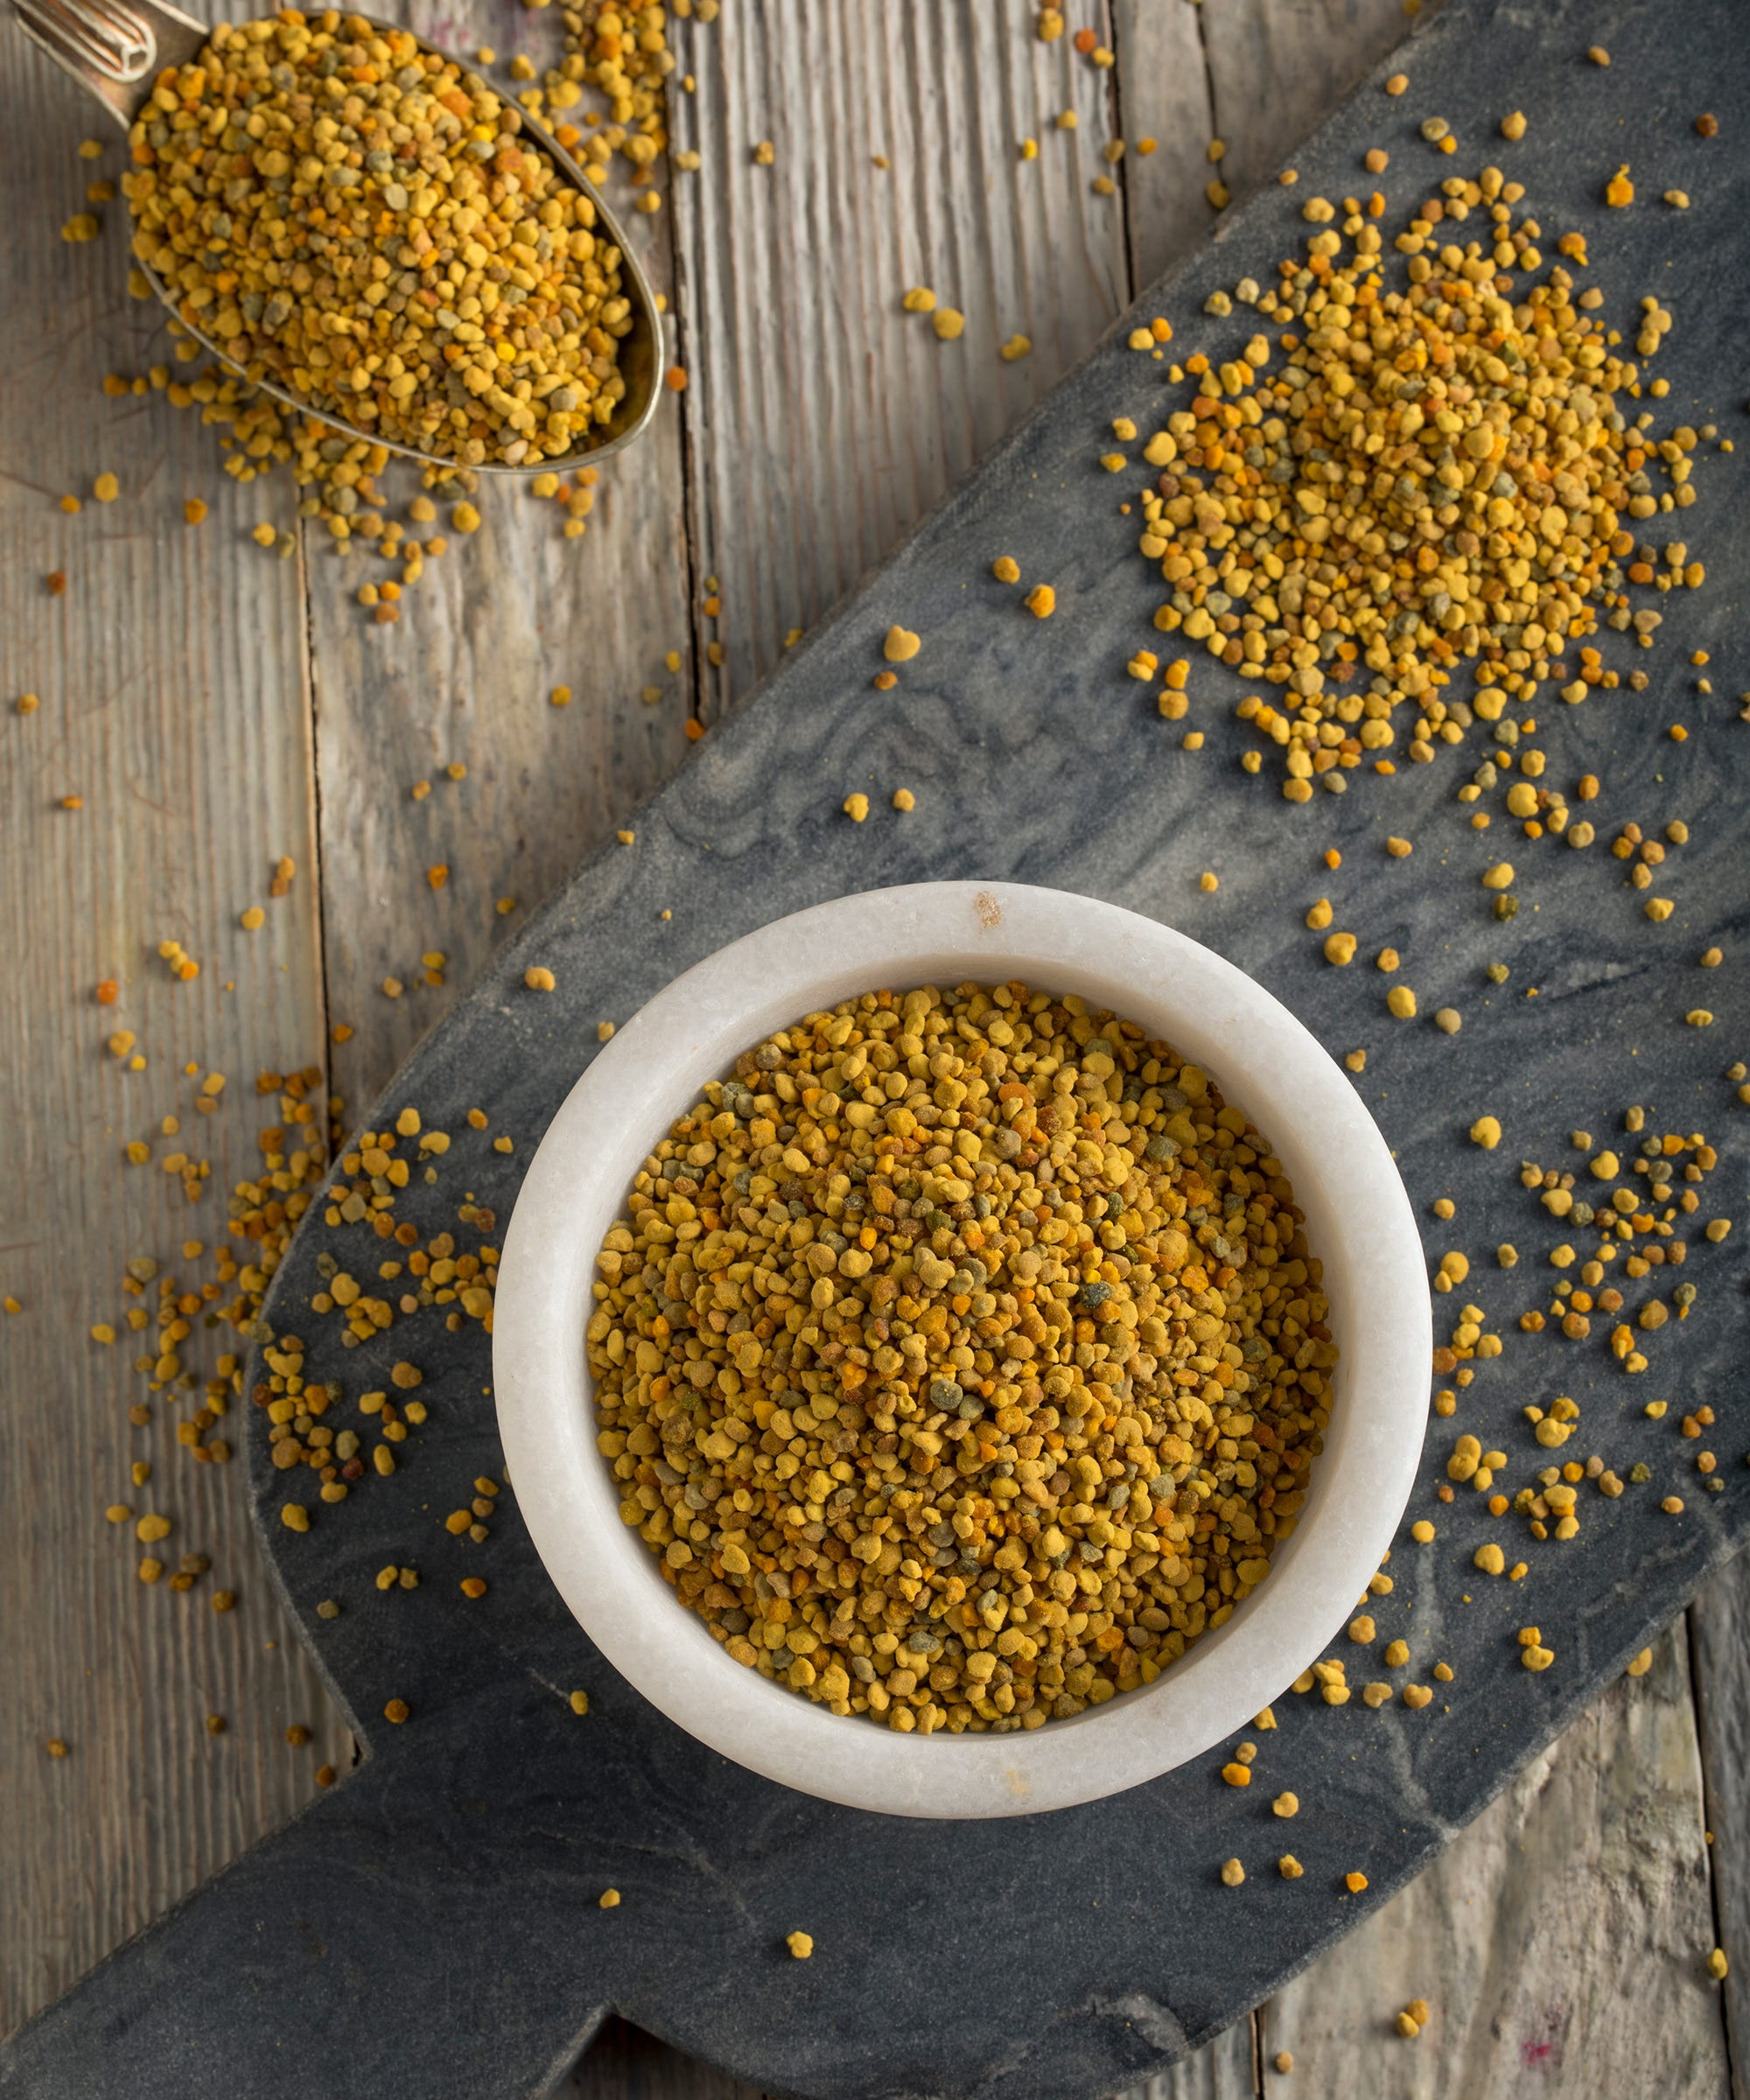 Bee Pollen Benefits Side Effects Of Popular Superfood